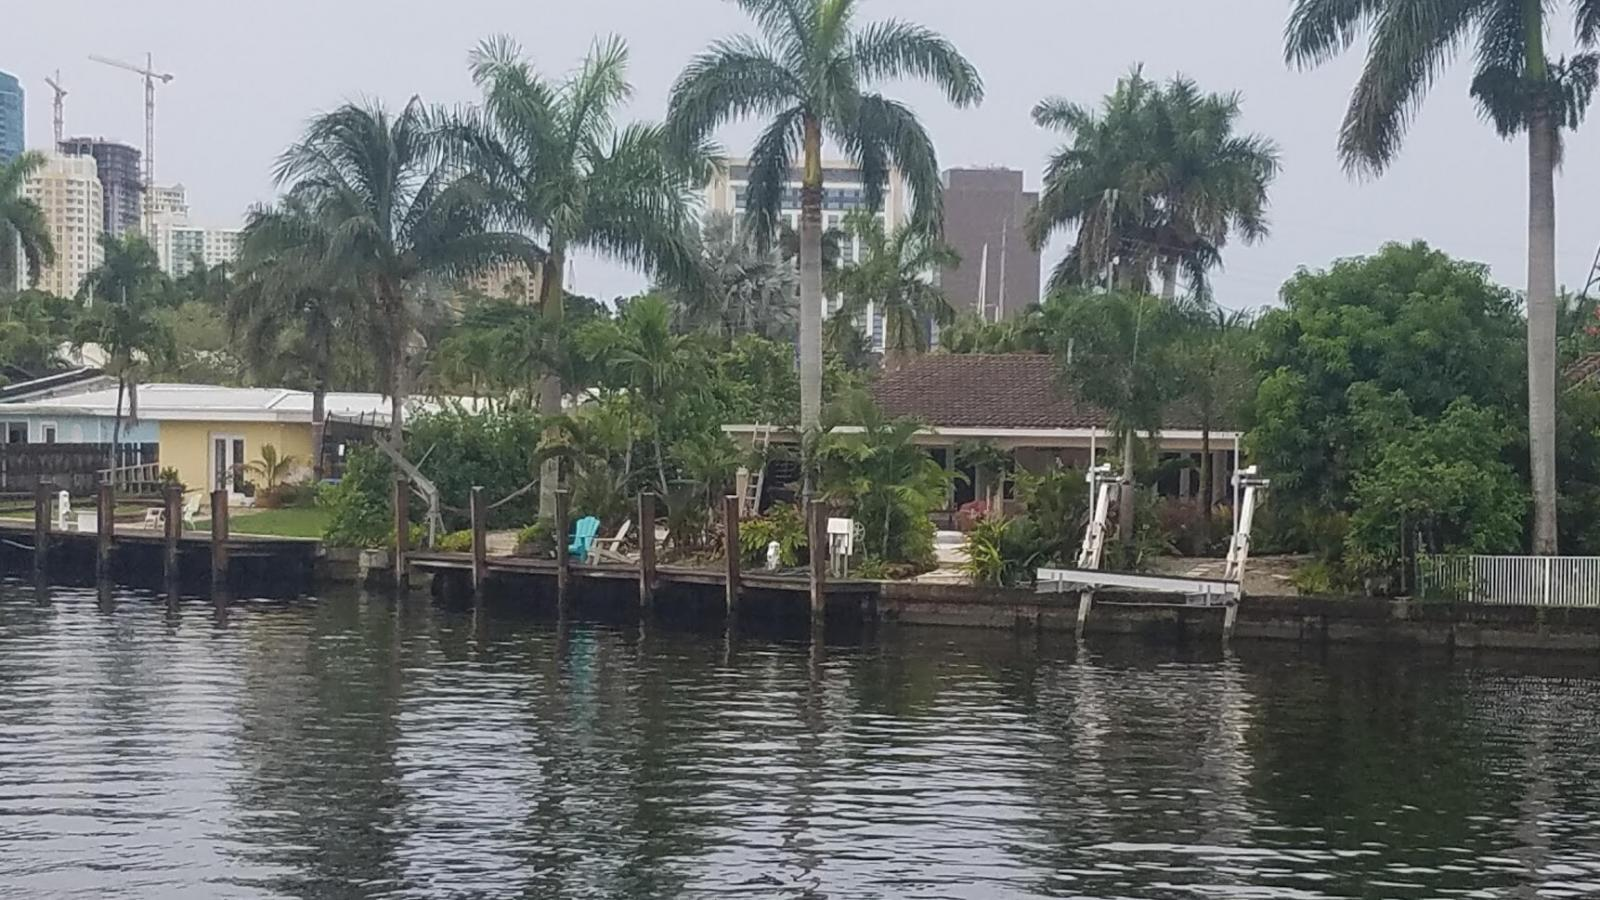 Two different types of boat lifts on this picture.